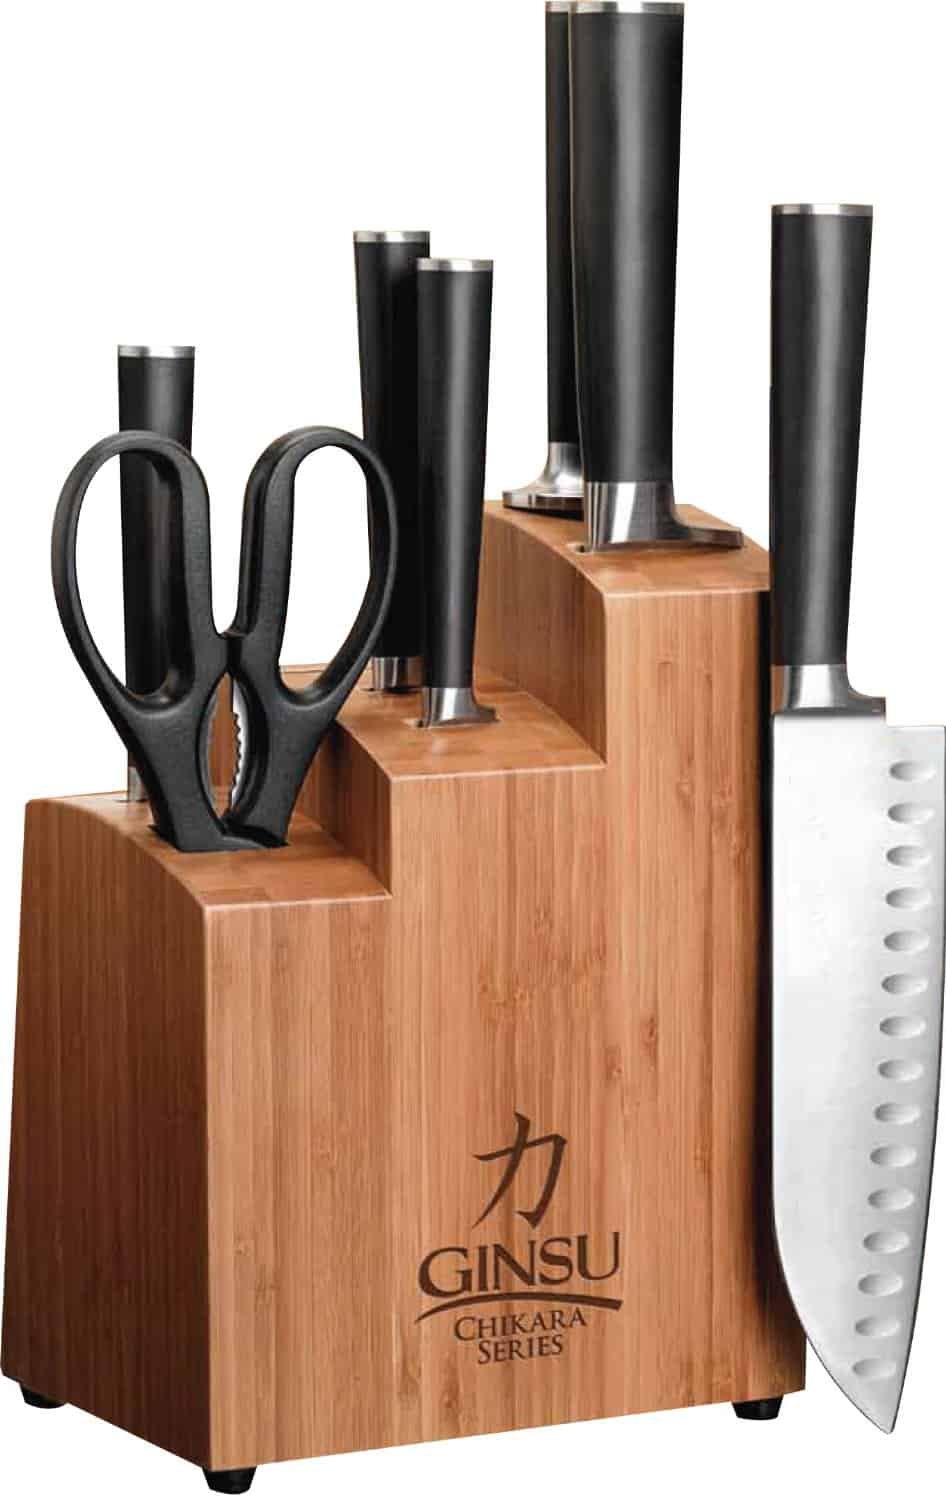 Ginsu  Chikara 8-Piece Stainless Steel Knife Set Review